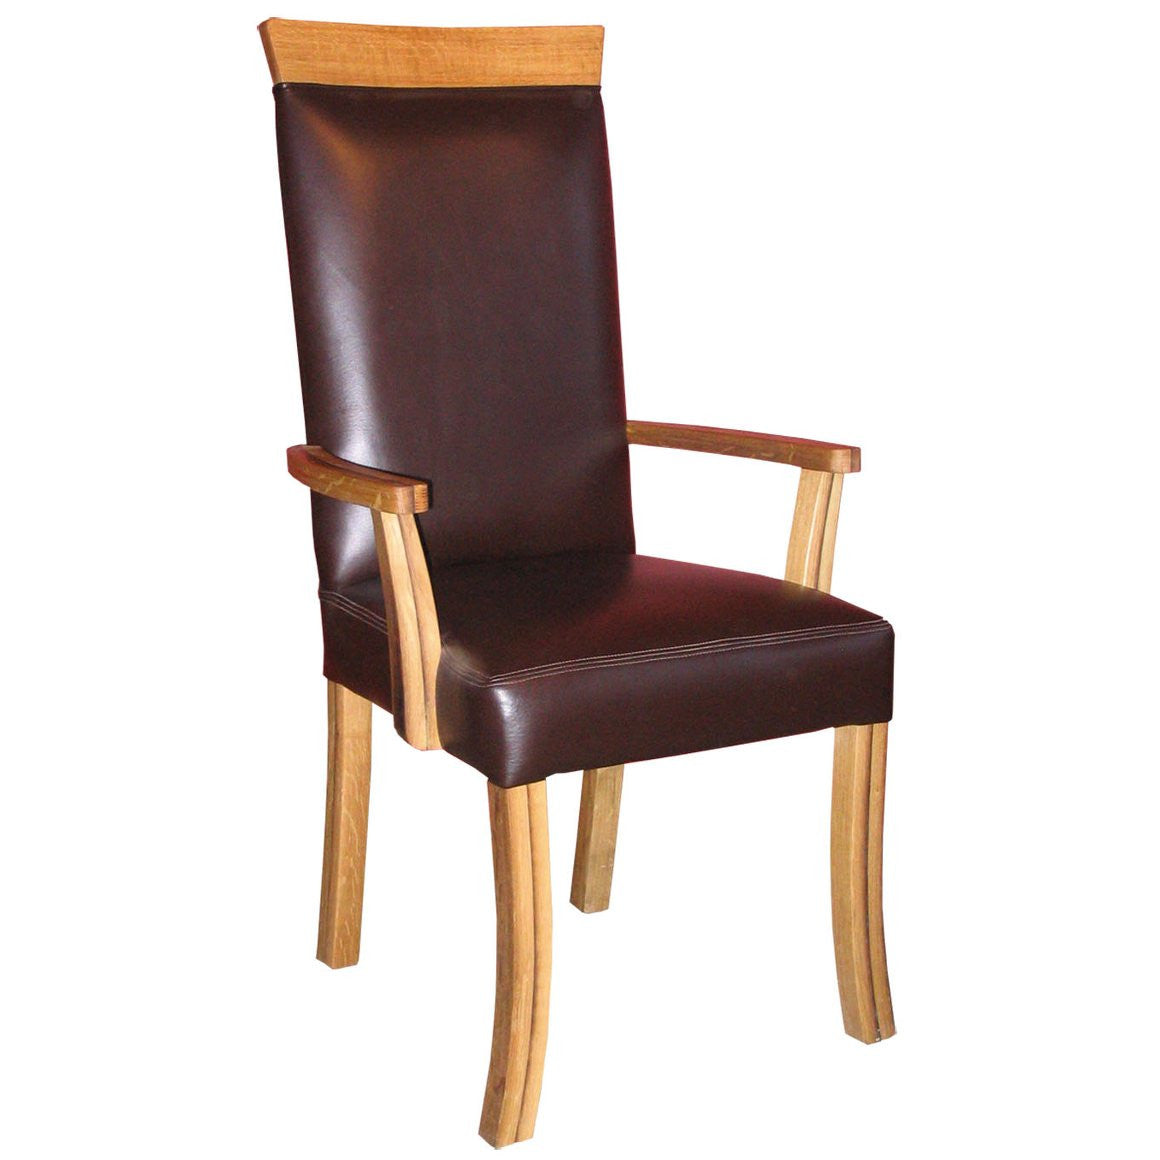 Corvina Reserve Dining Chair Vinwood - Carver dining chairs